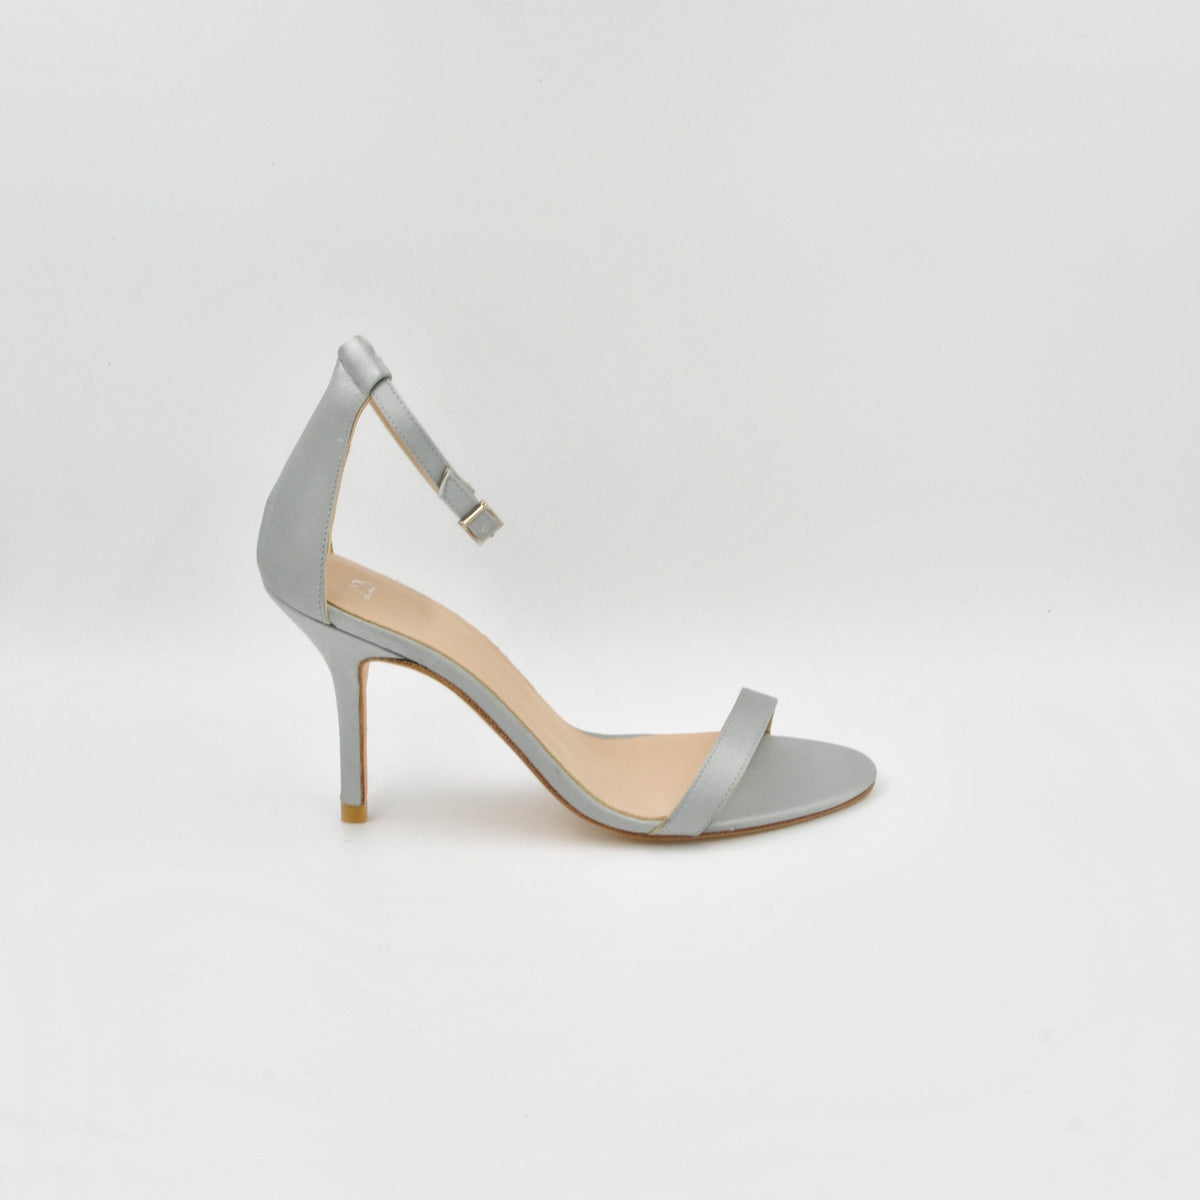 Lola Domecq Alejandra In Silver Hand made satin sandal